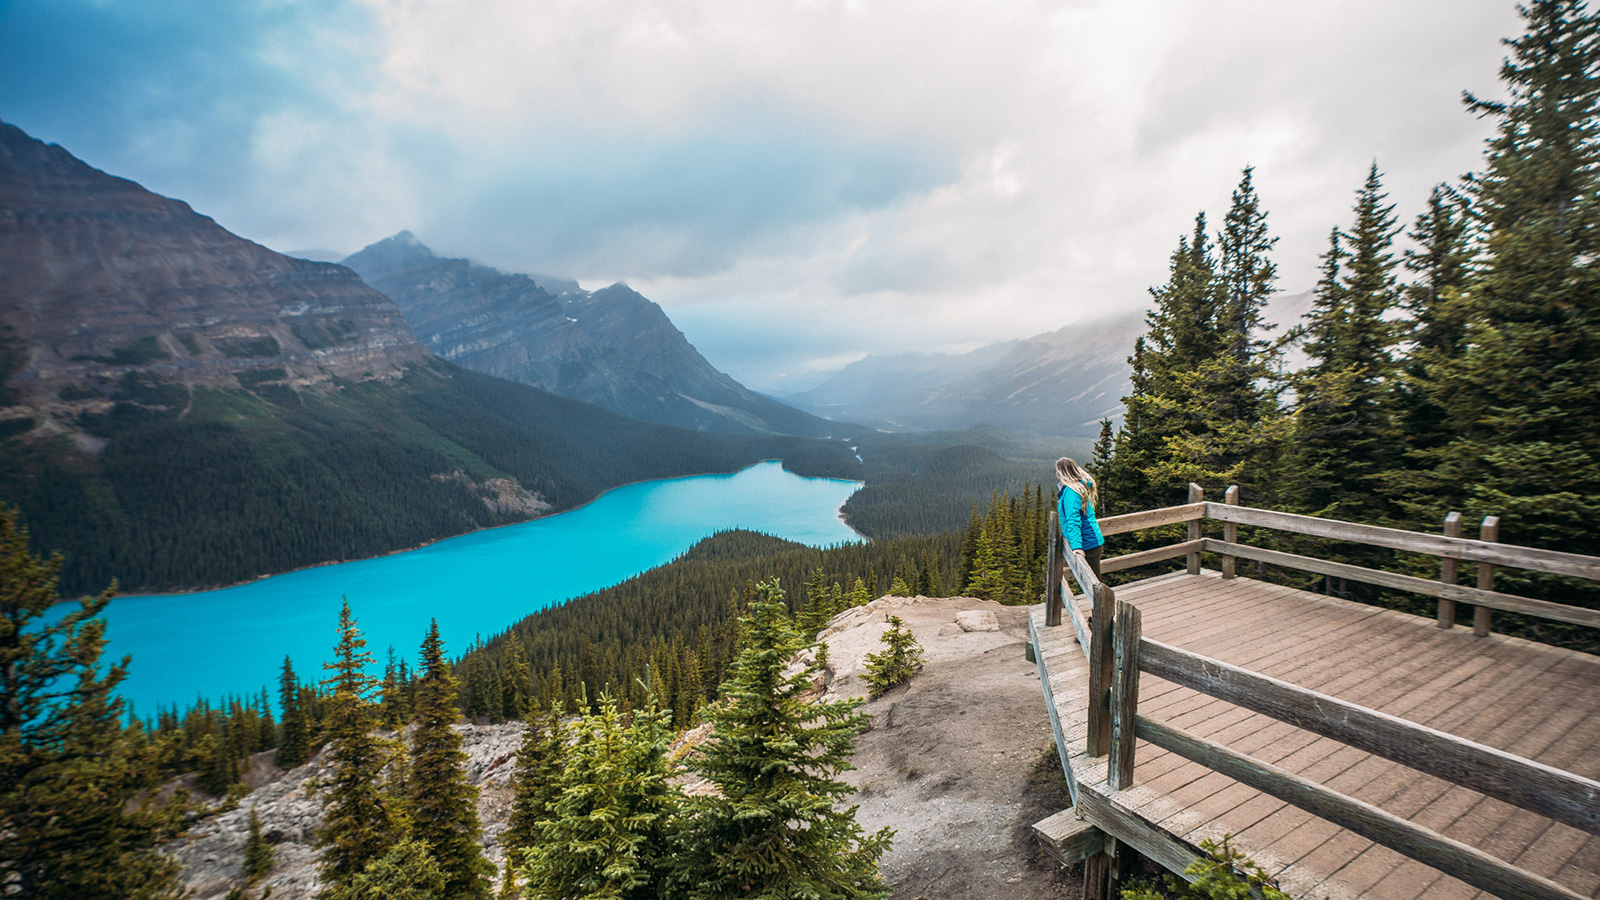 Woman on platform overlooking glacial lake and mountains